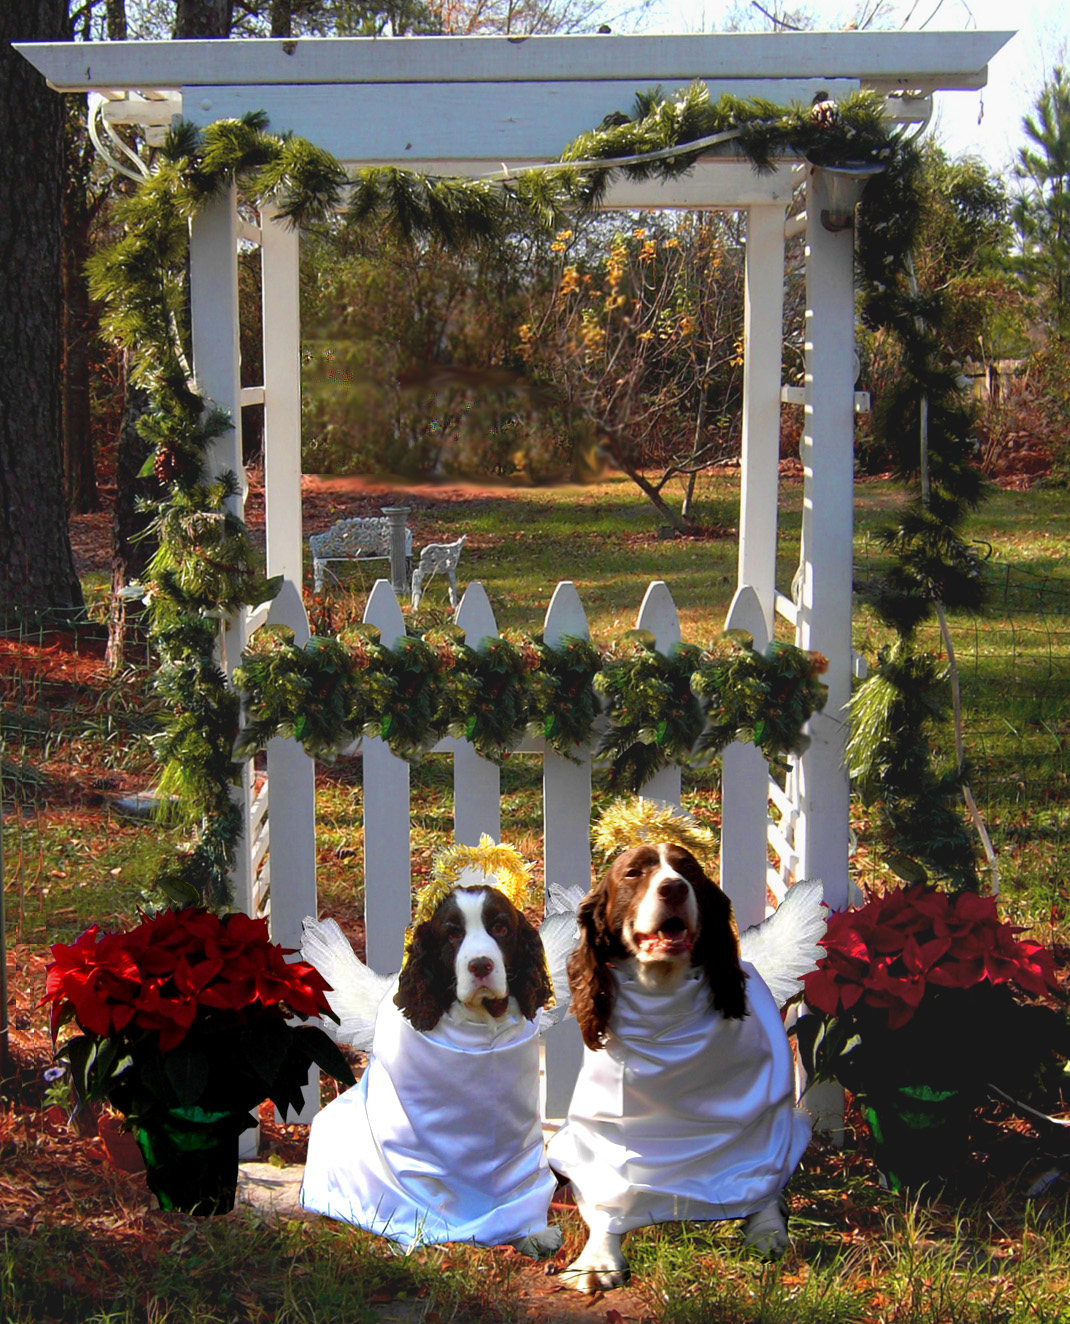 Click image for larger version  Name:Christmas_Angels4[1].jpg Views:67 Size:634.1 KB ID:117753